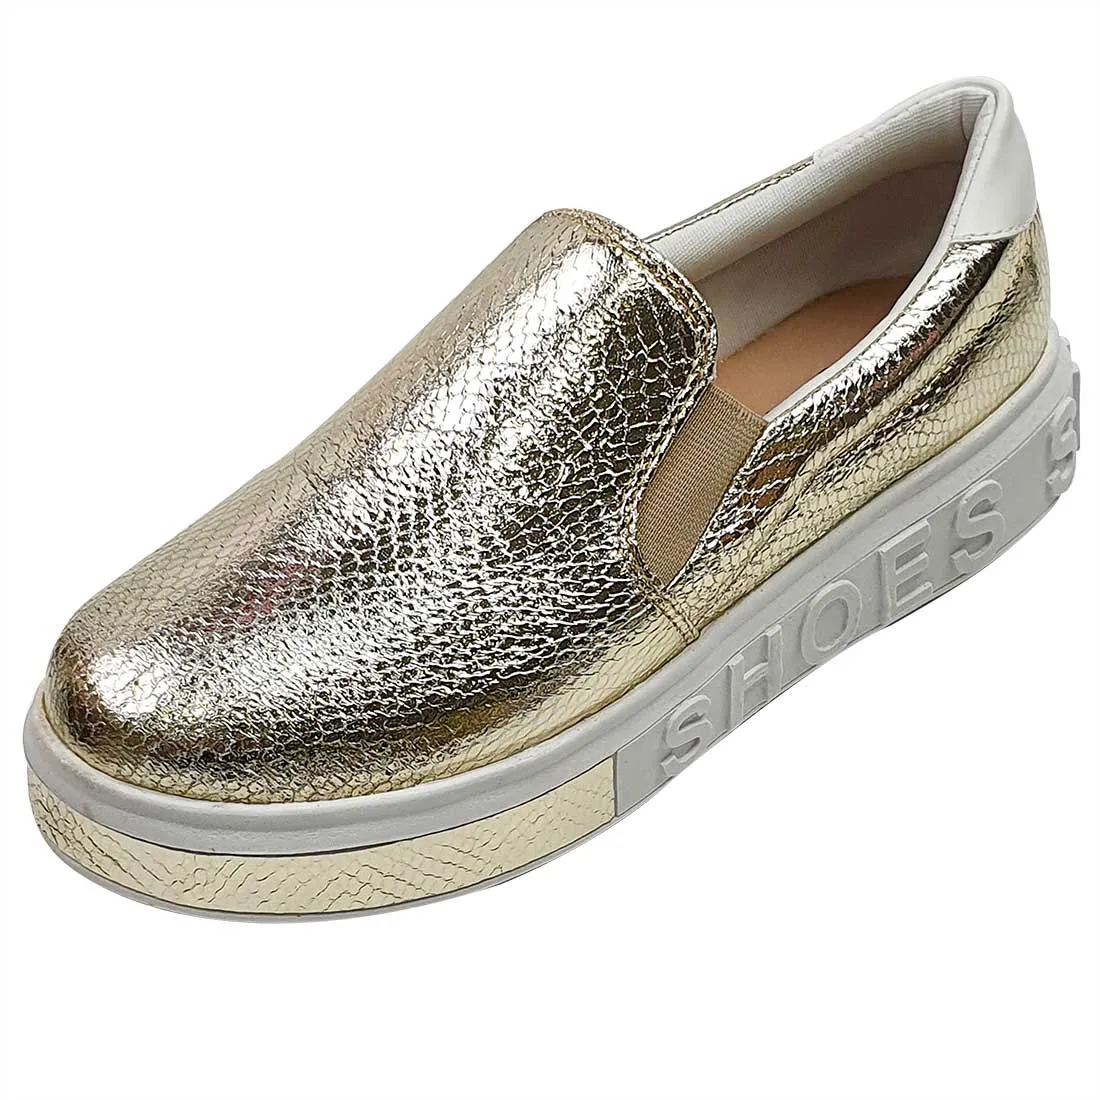 Tênis Slip On Shoes Croco - Ouro